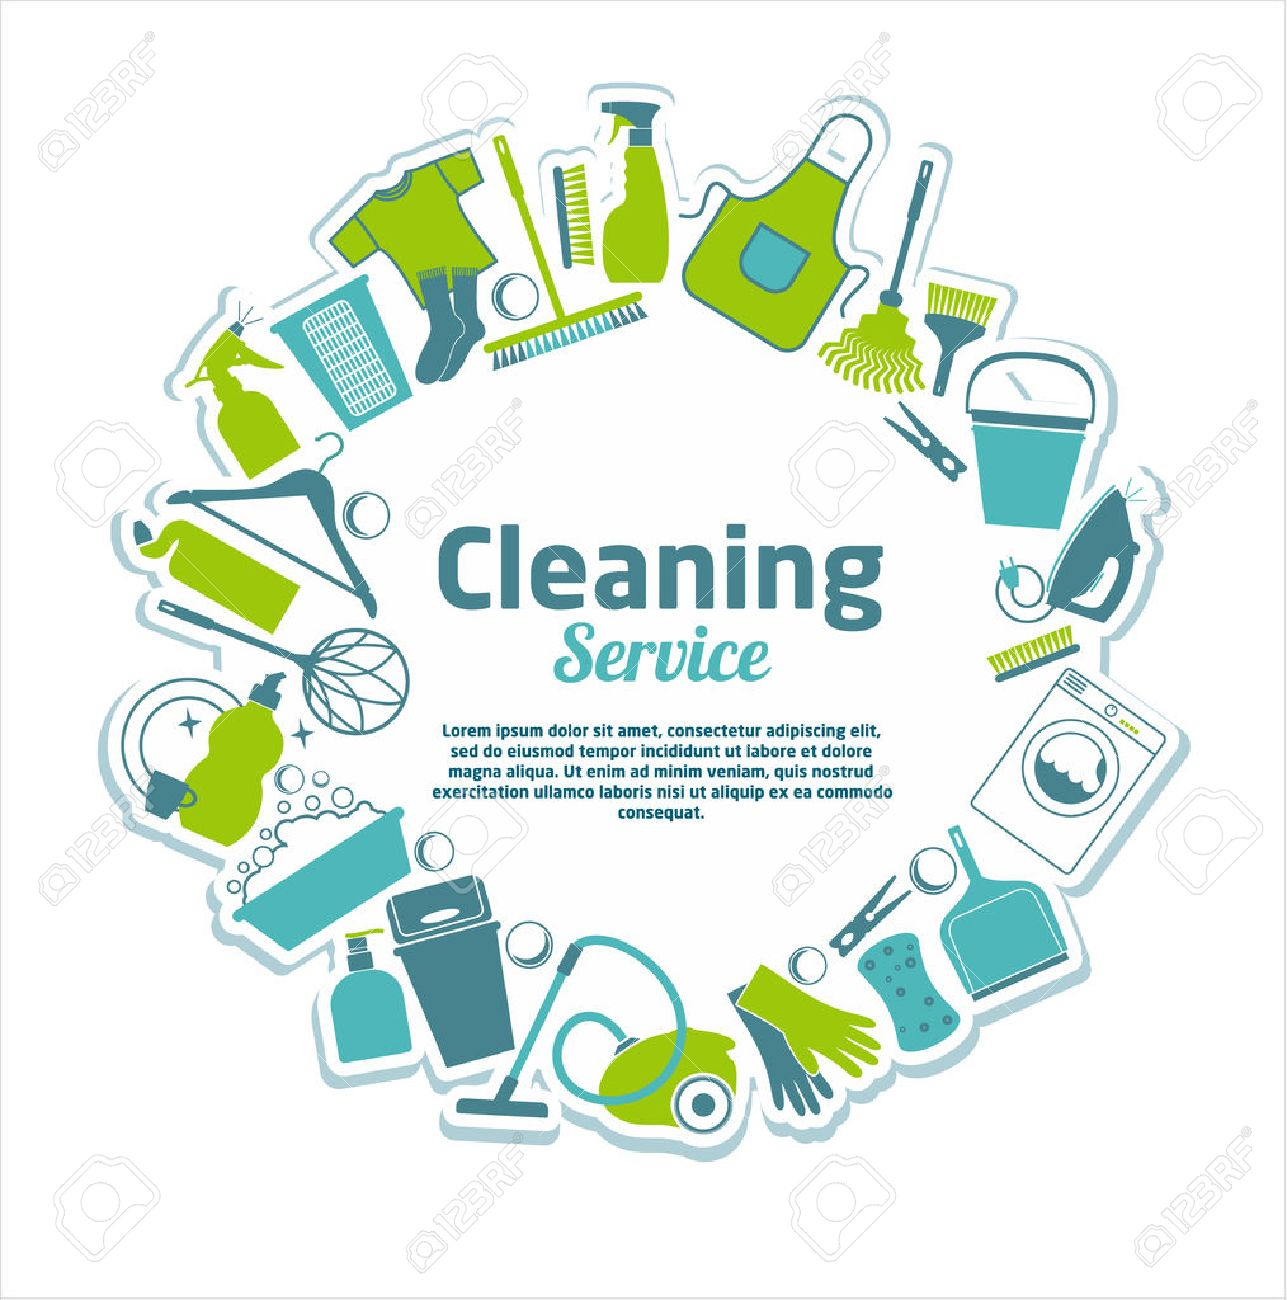 6 426 cleaning service stock illustrations cliparts and royalty cleaning service cleaning service illustration